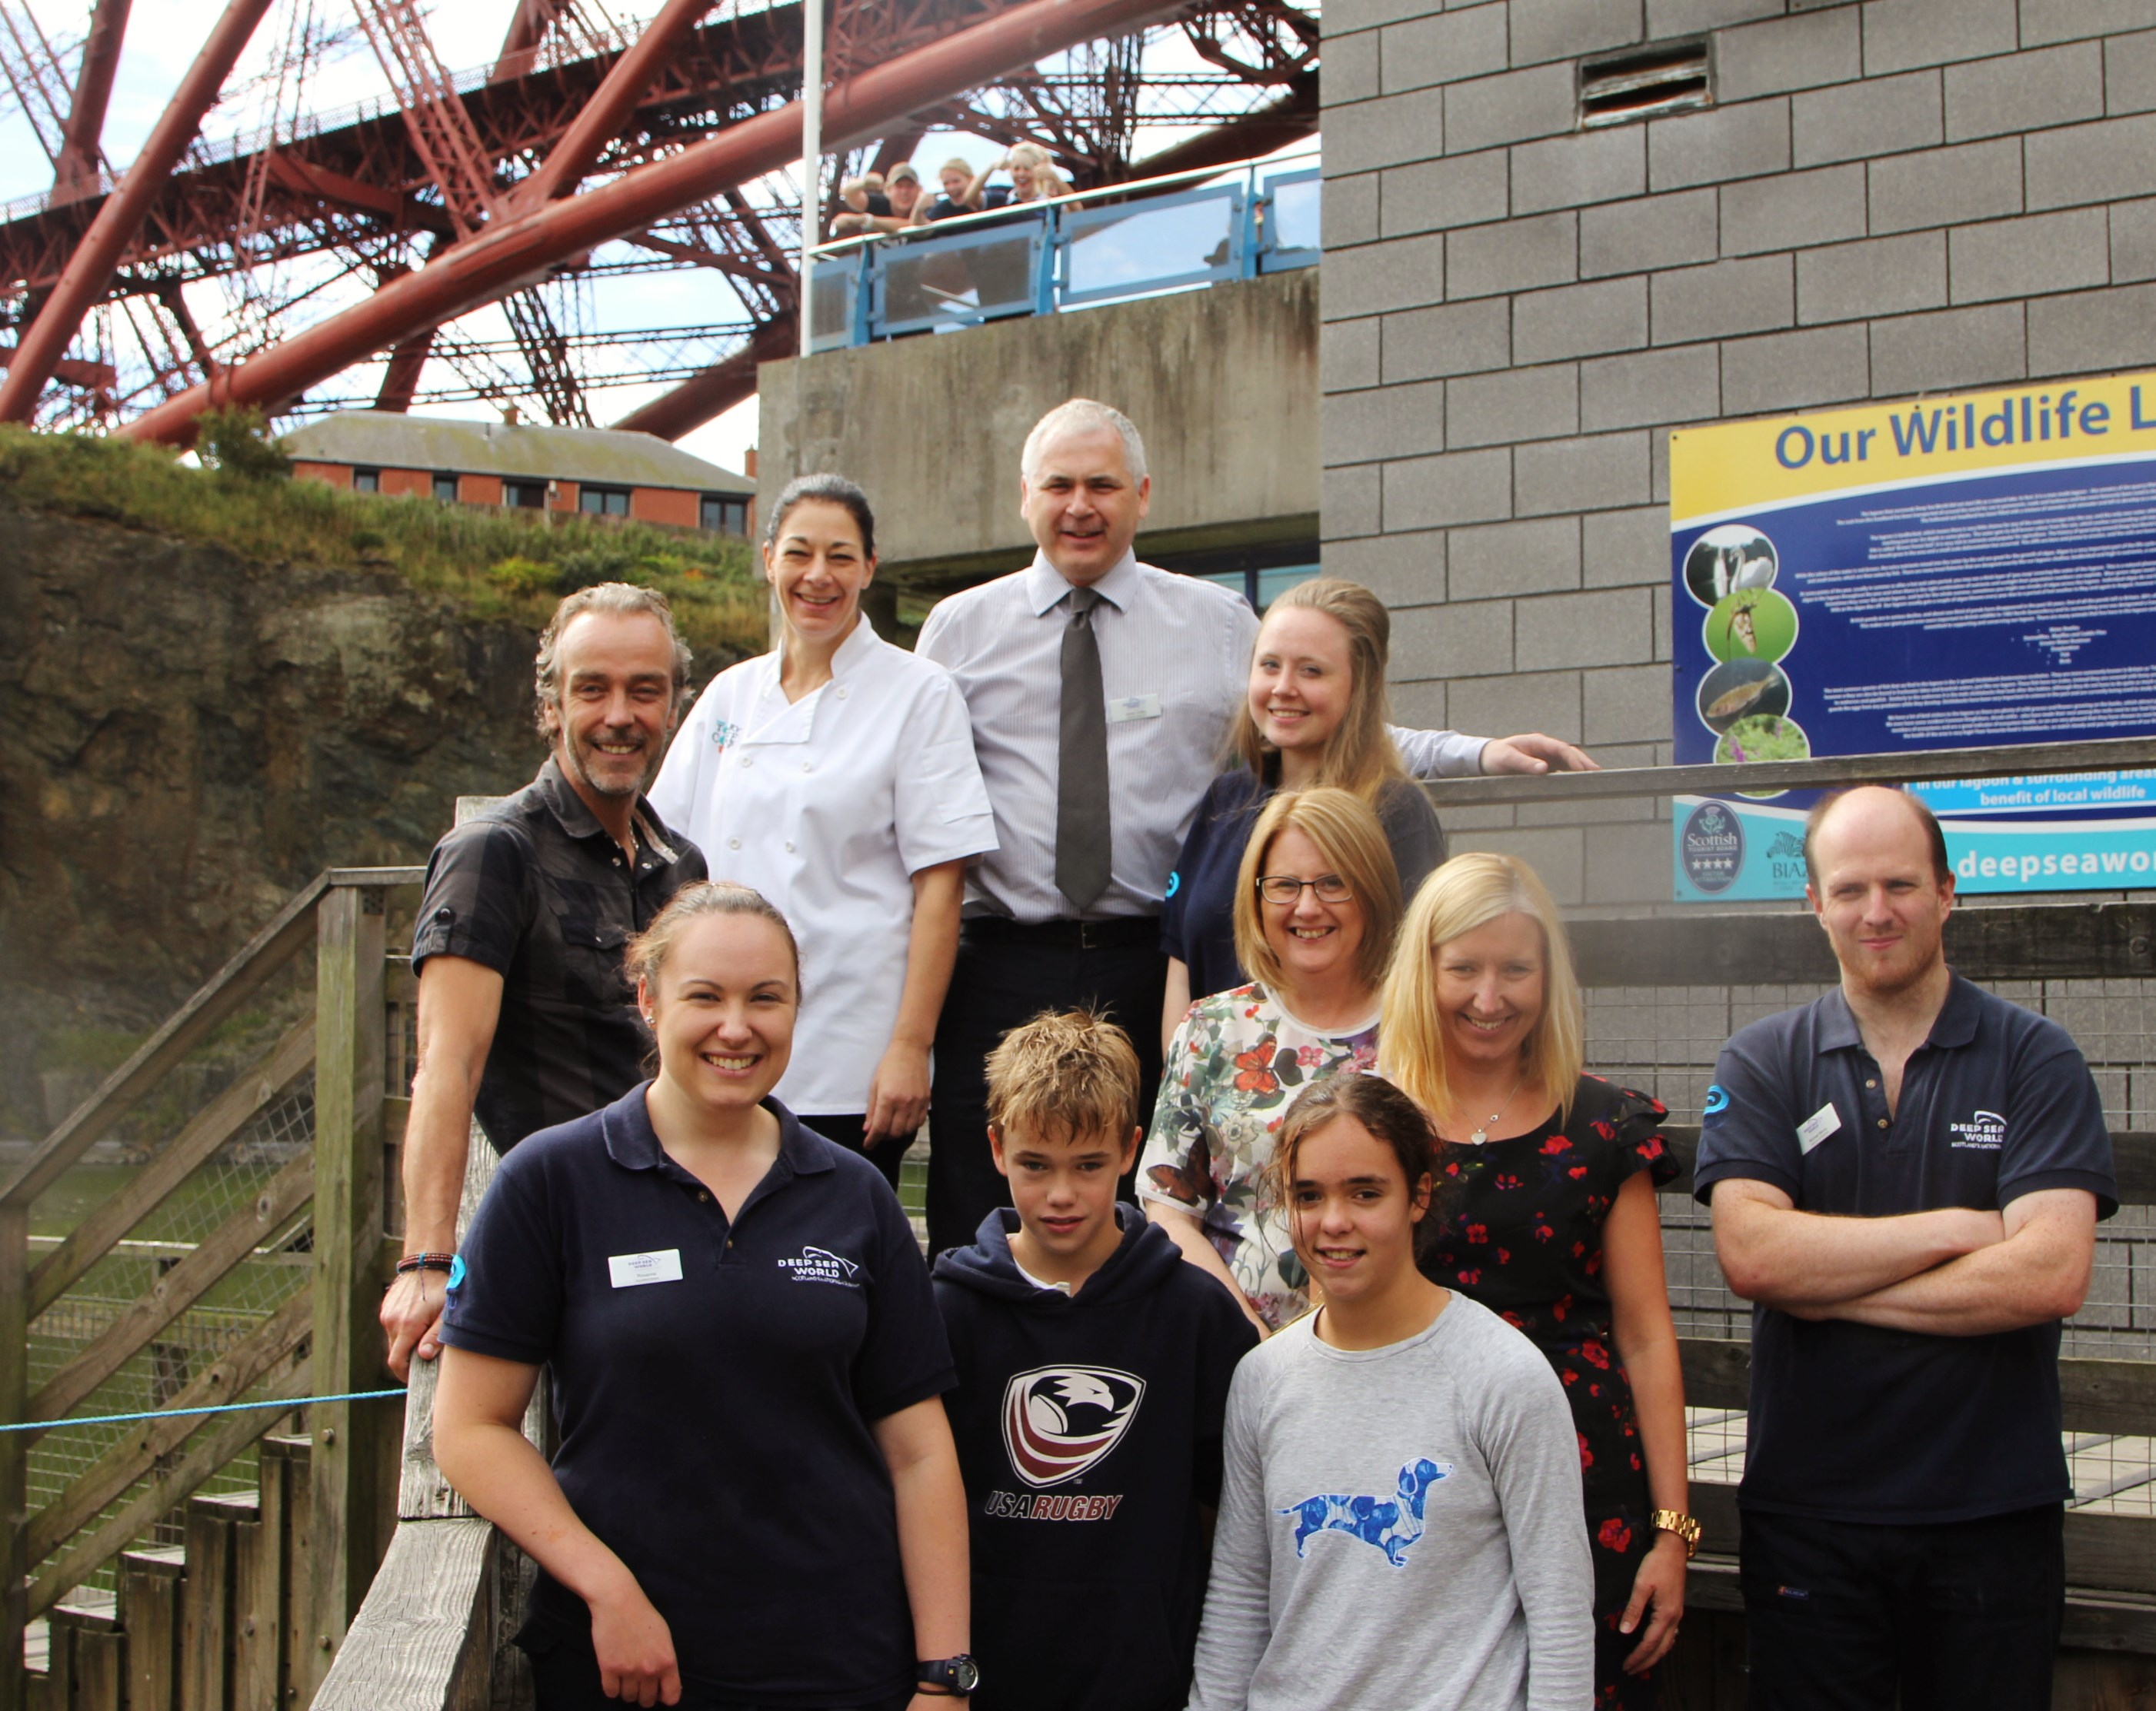 John Hannah, left, with his kids and members of the Deep Sea World team